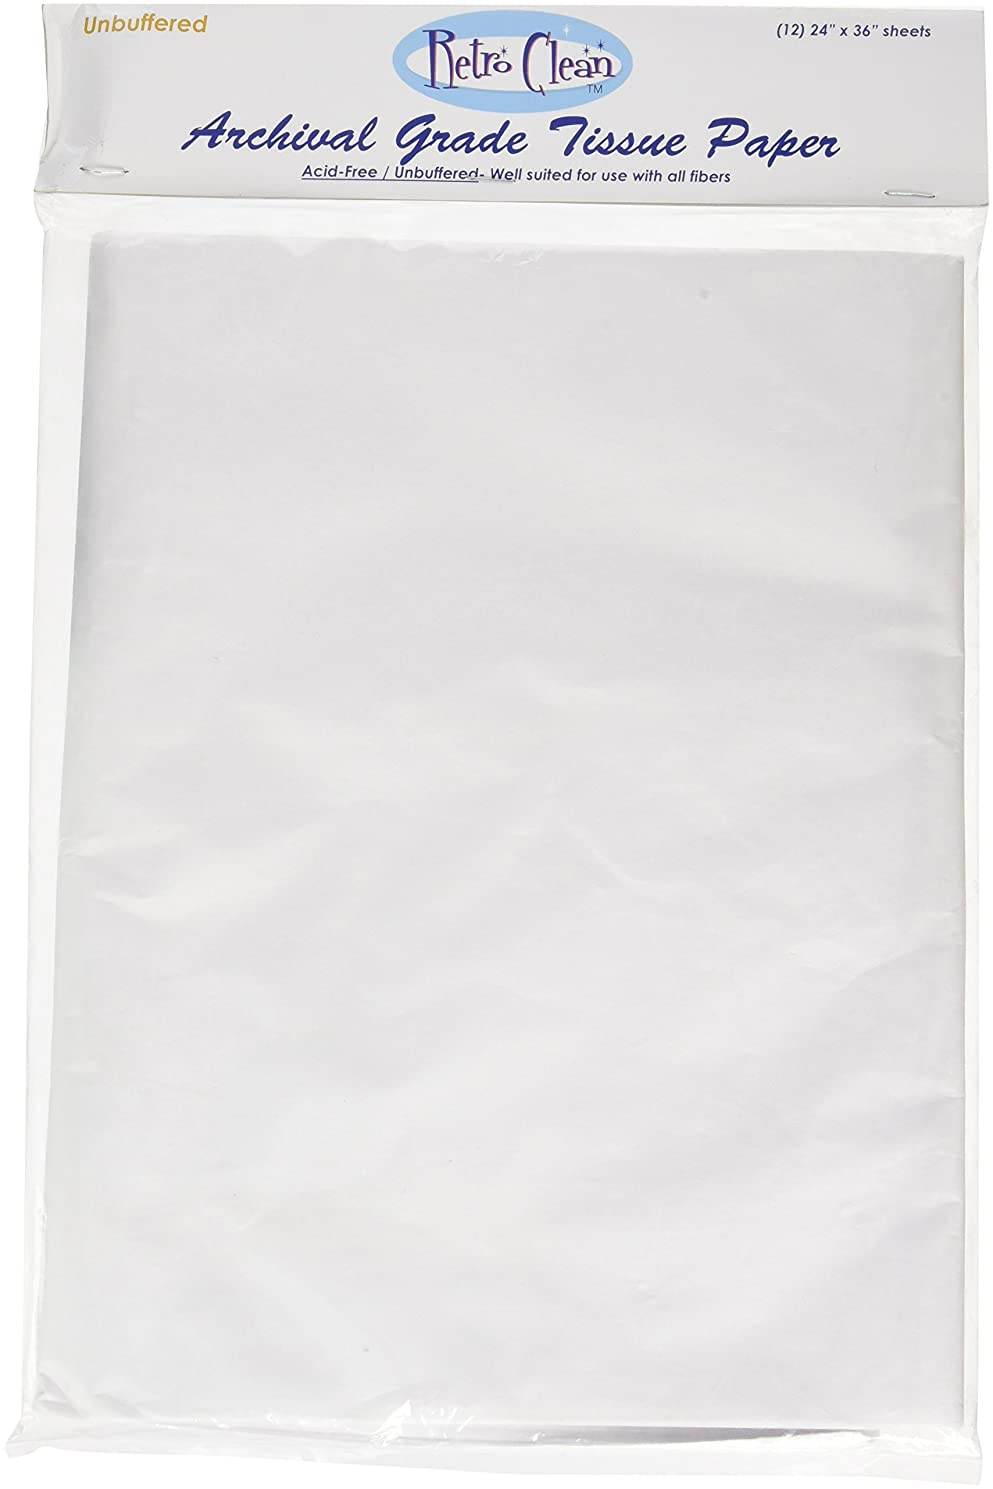 RetroClean Unbuffered Archival Grade Tissue Paper, 24-Inch x 36-Inch, 12 sheets